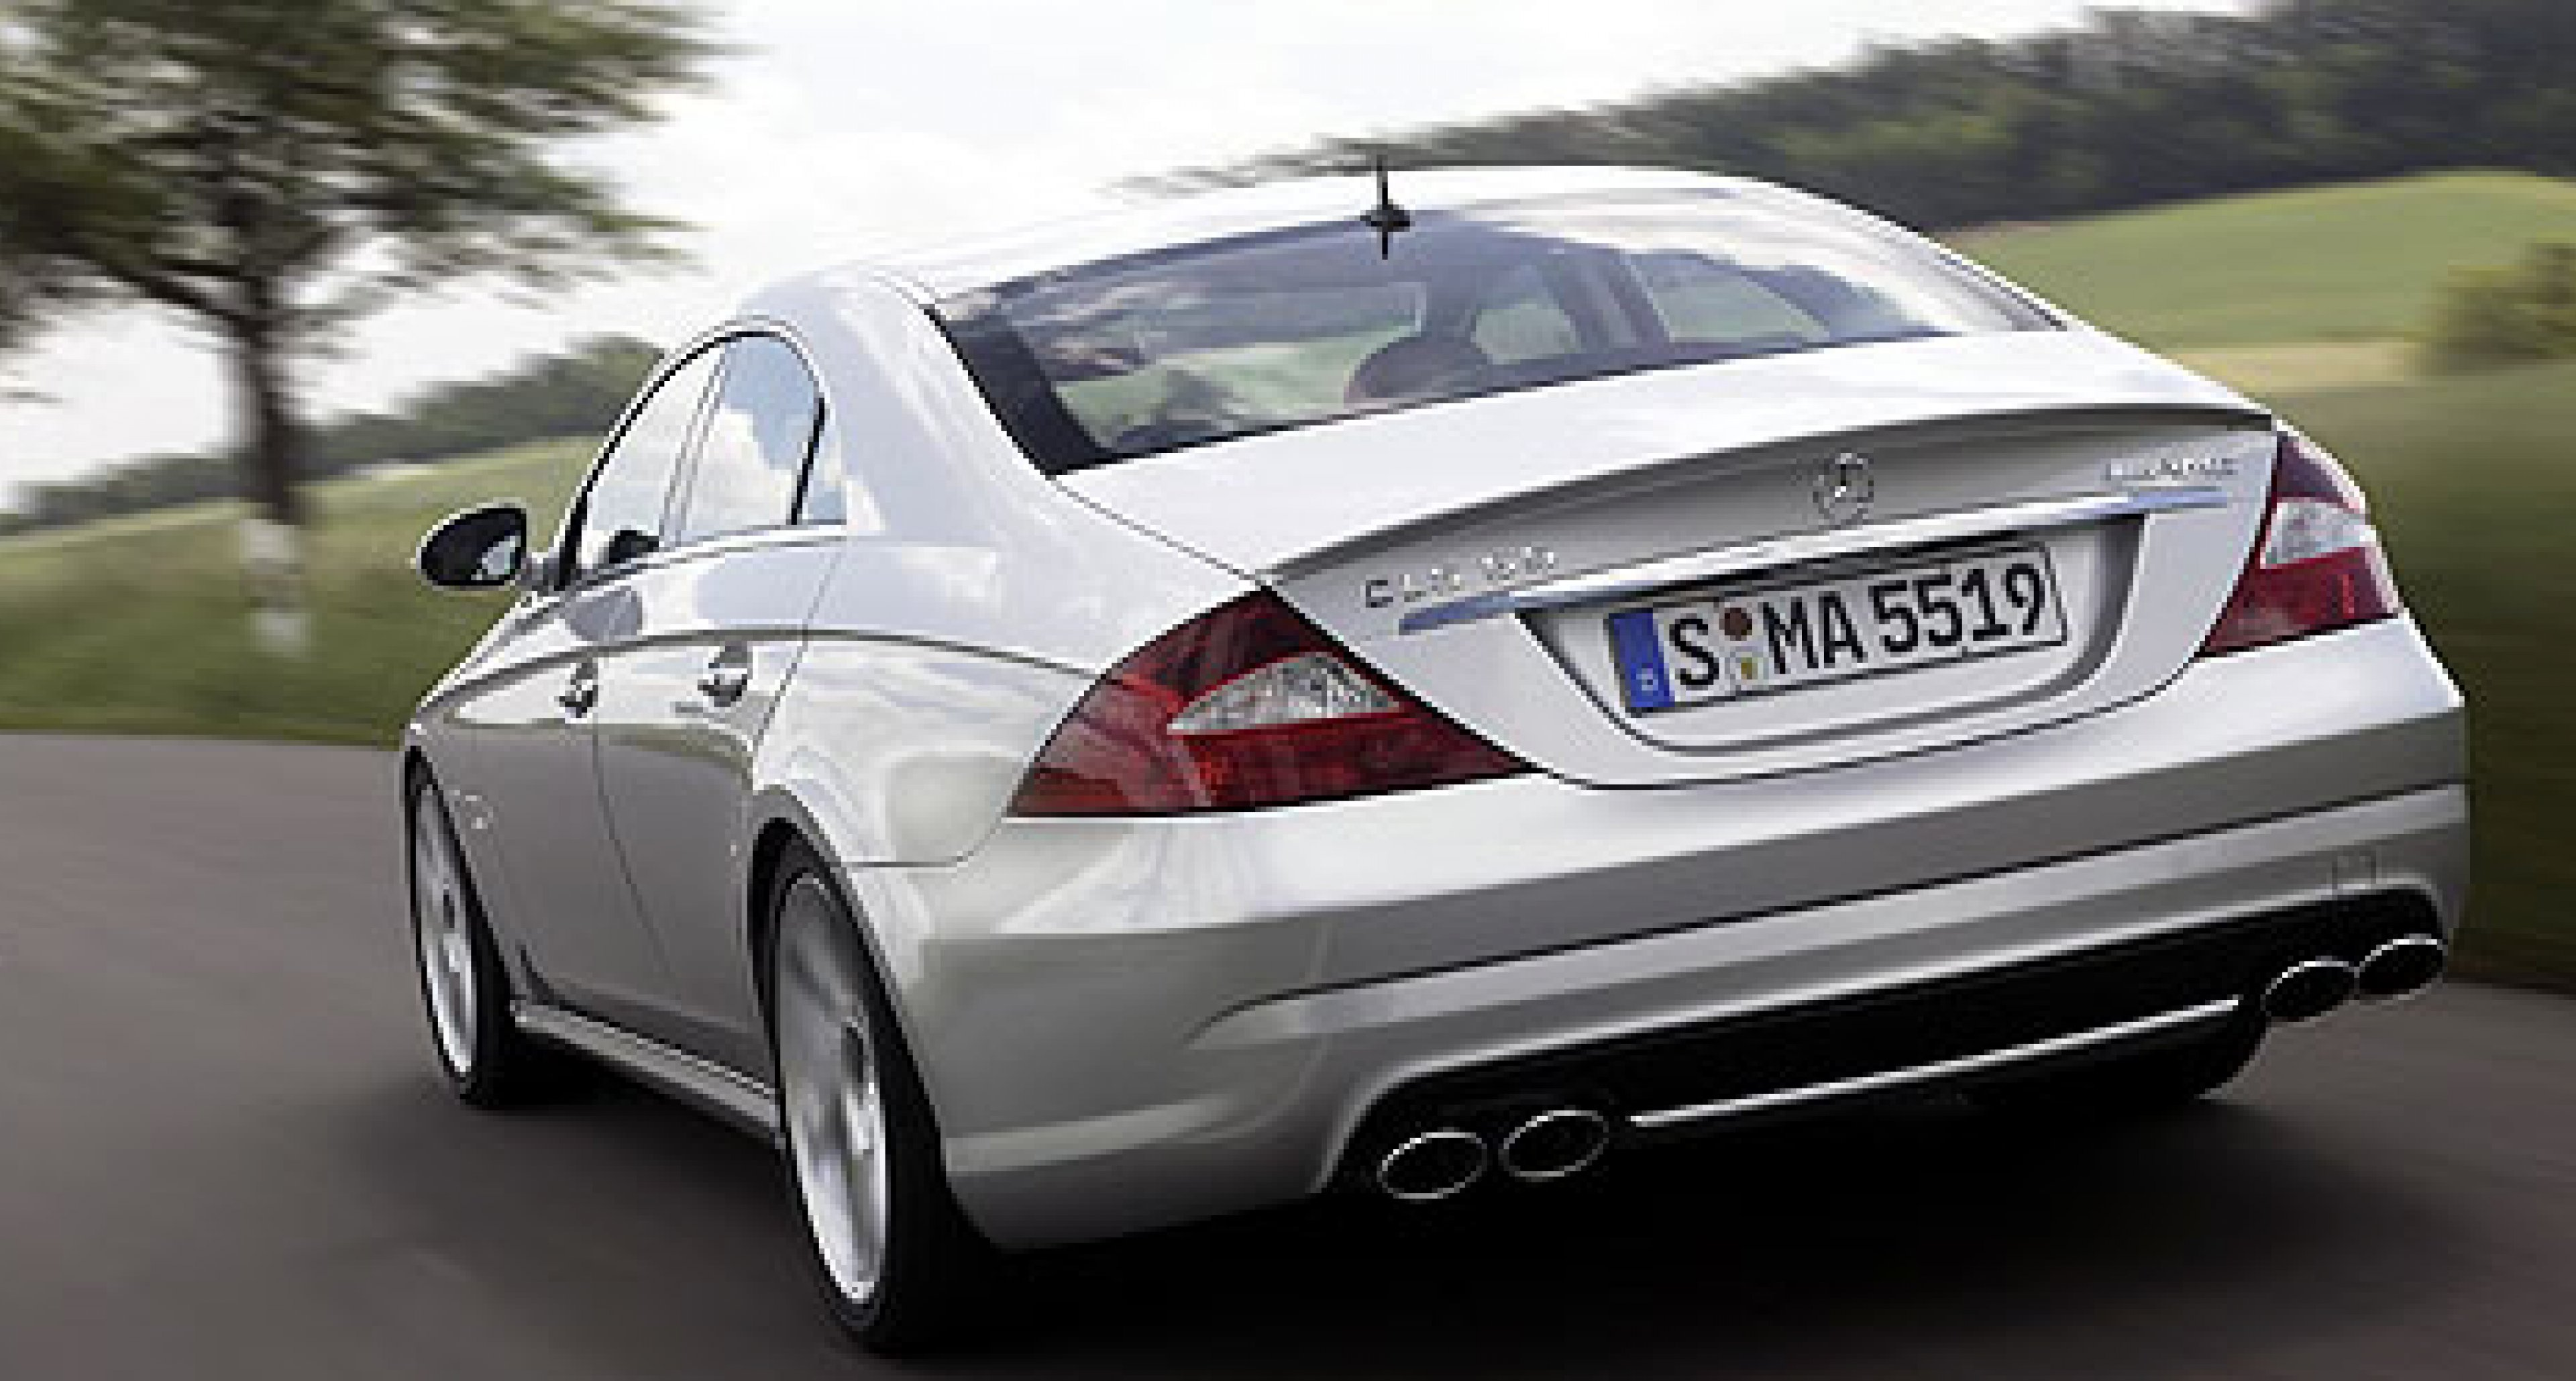 The new Mercedes-Benz CLS 55 AMG